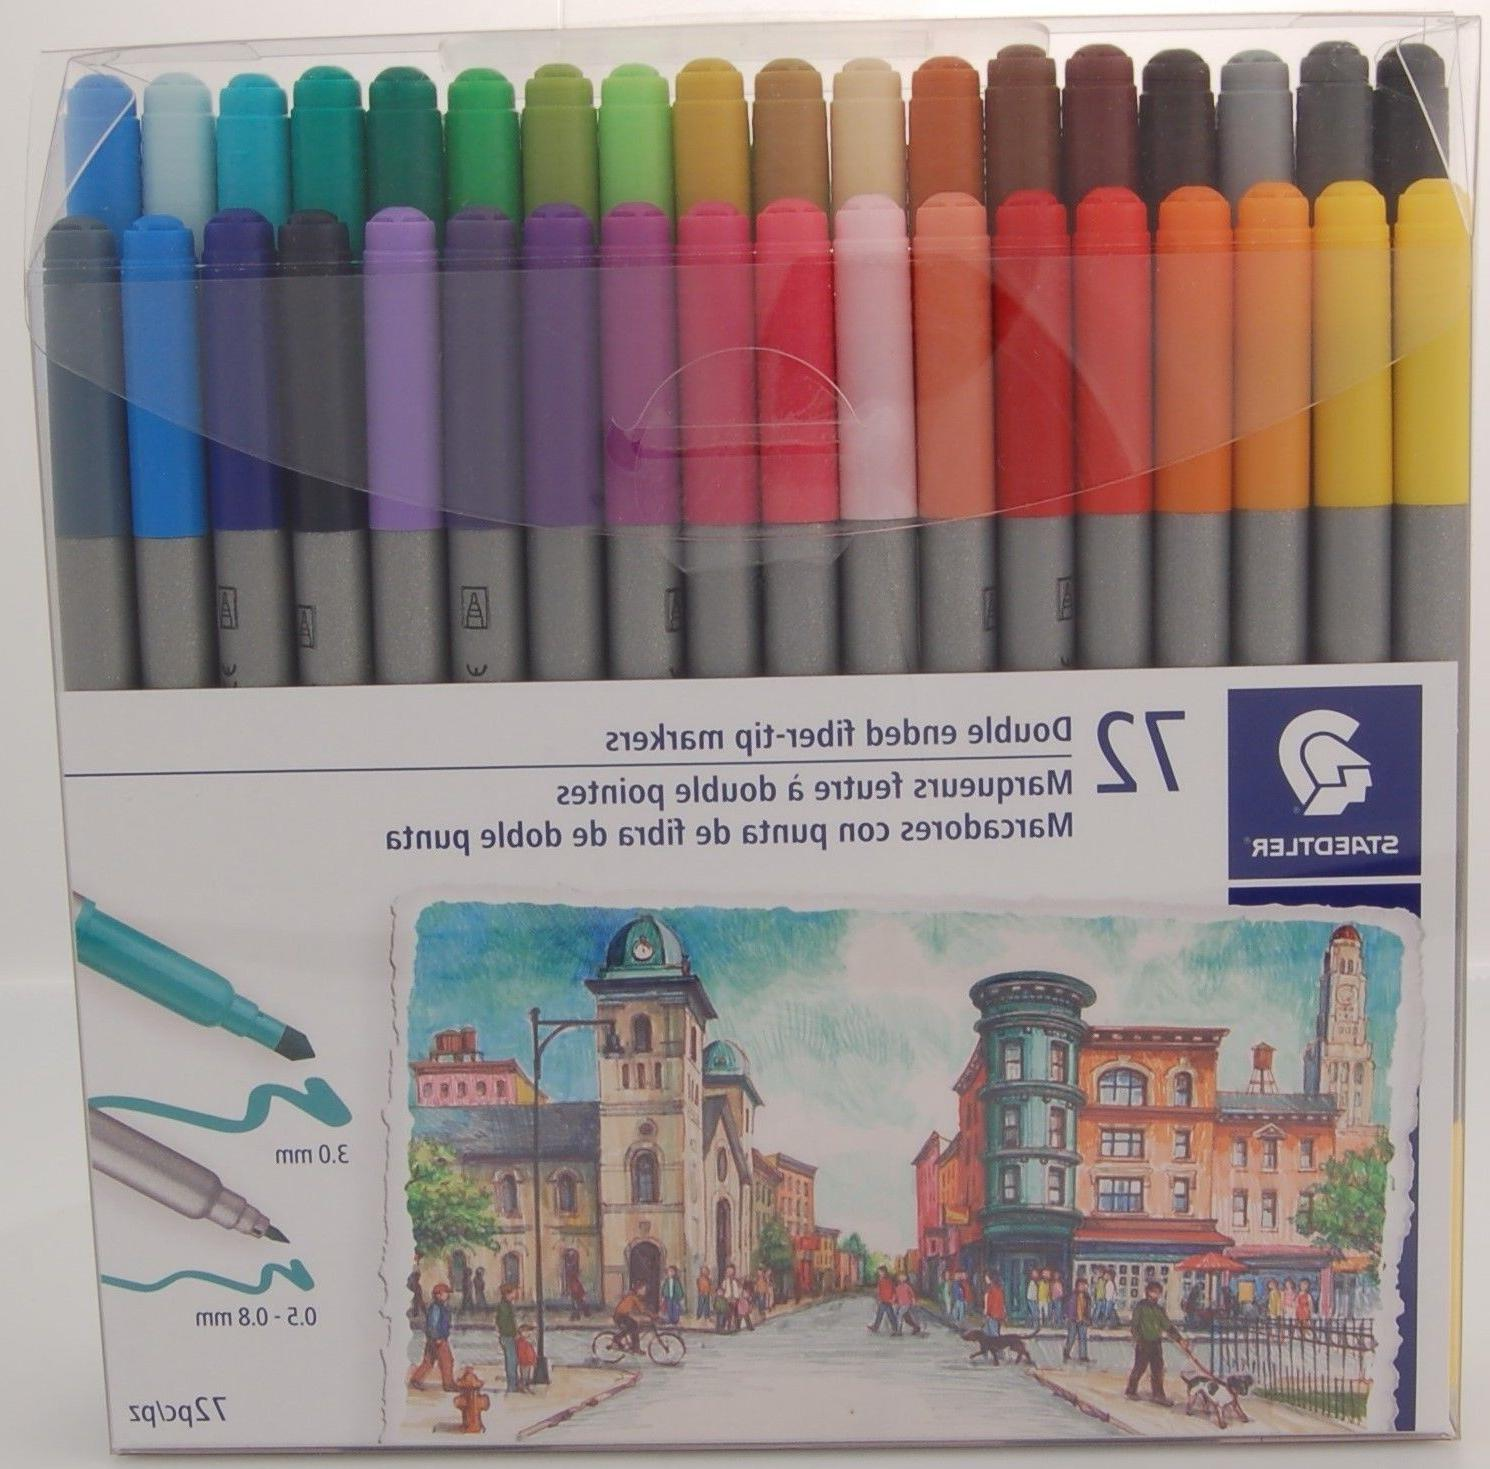 NEW STAEDTLER 36 Brilliant Colors DUO-COLOR MARKERS 3.0 /& 0.5-0.8 mm Italy NIB